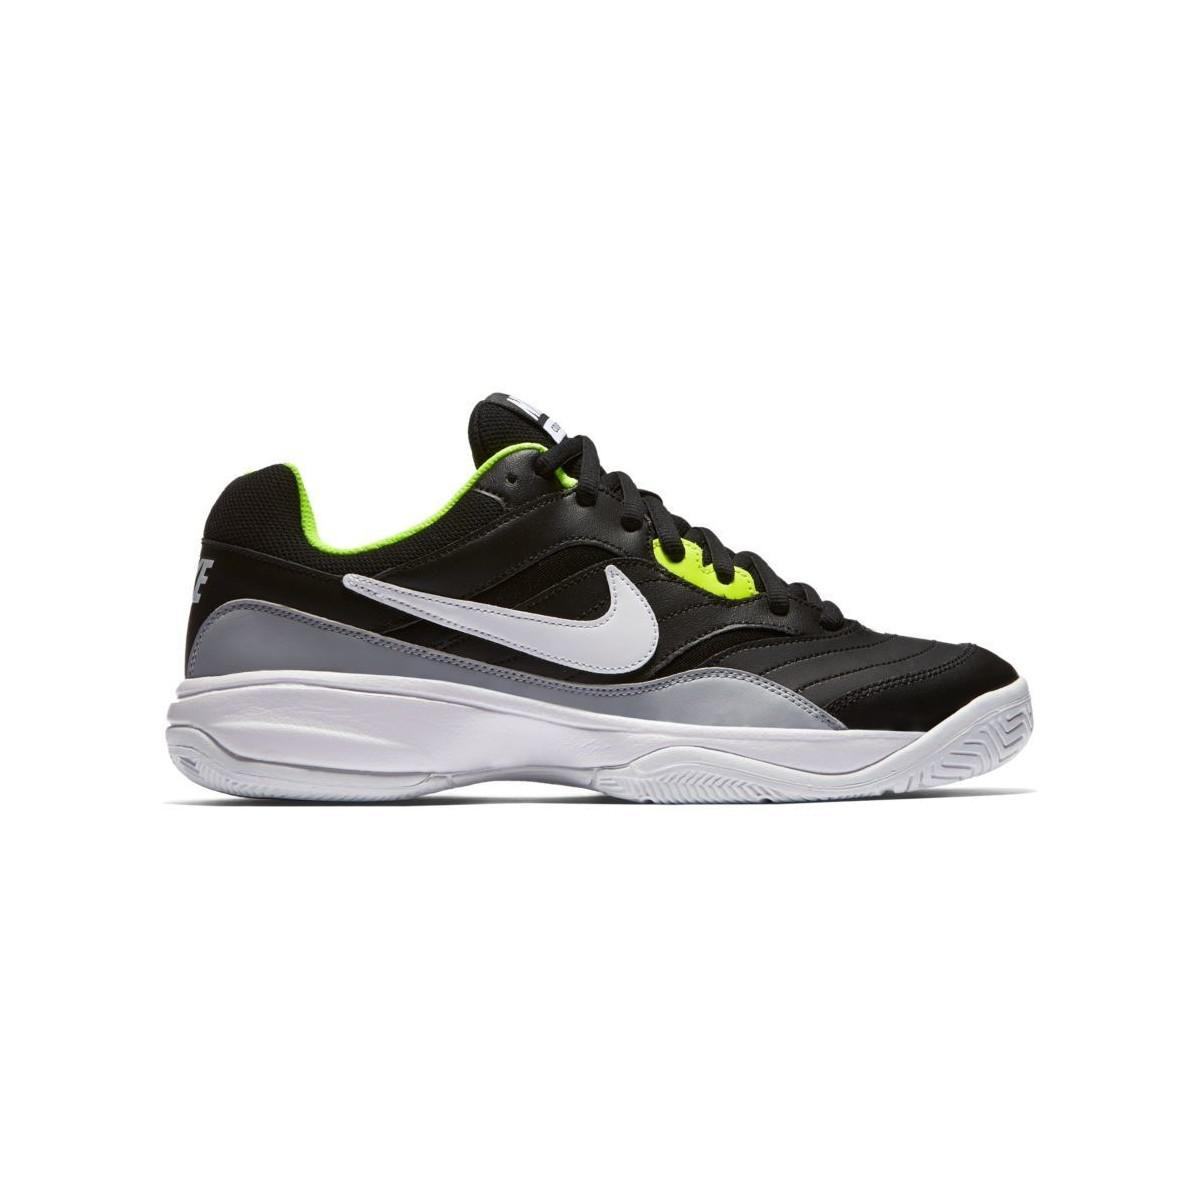 nike s court lite tennis shoe s shoes trainers